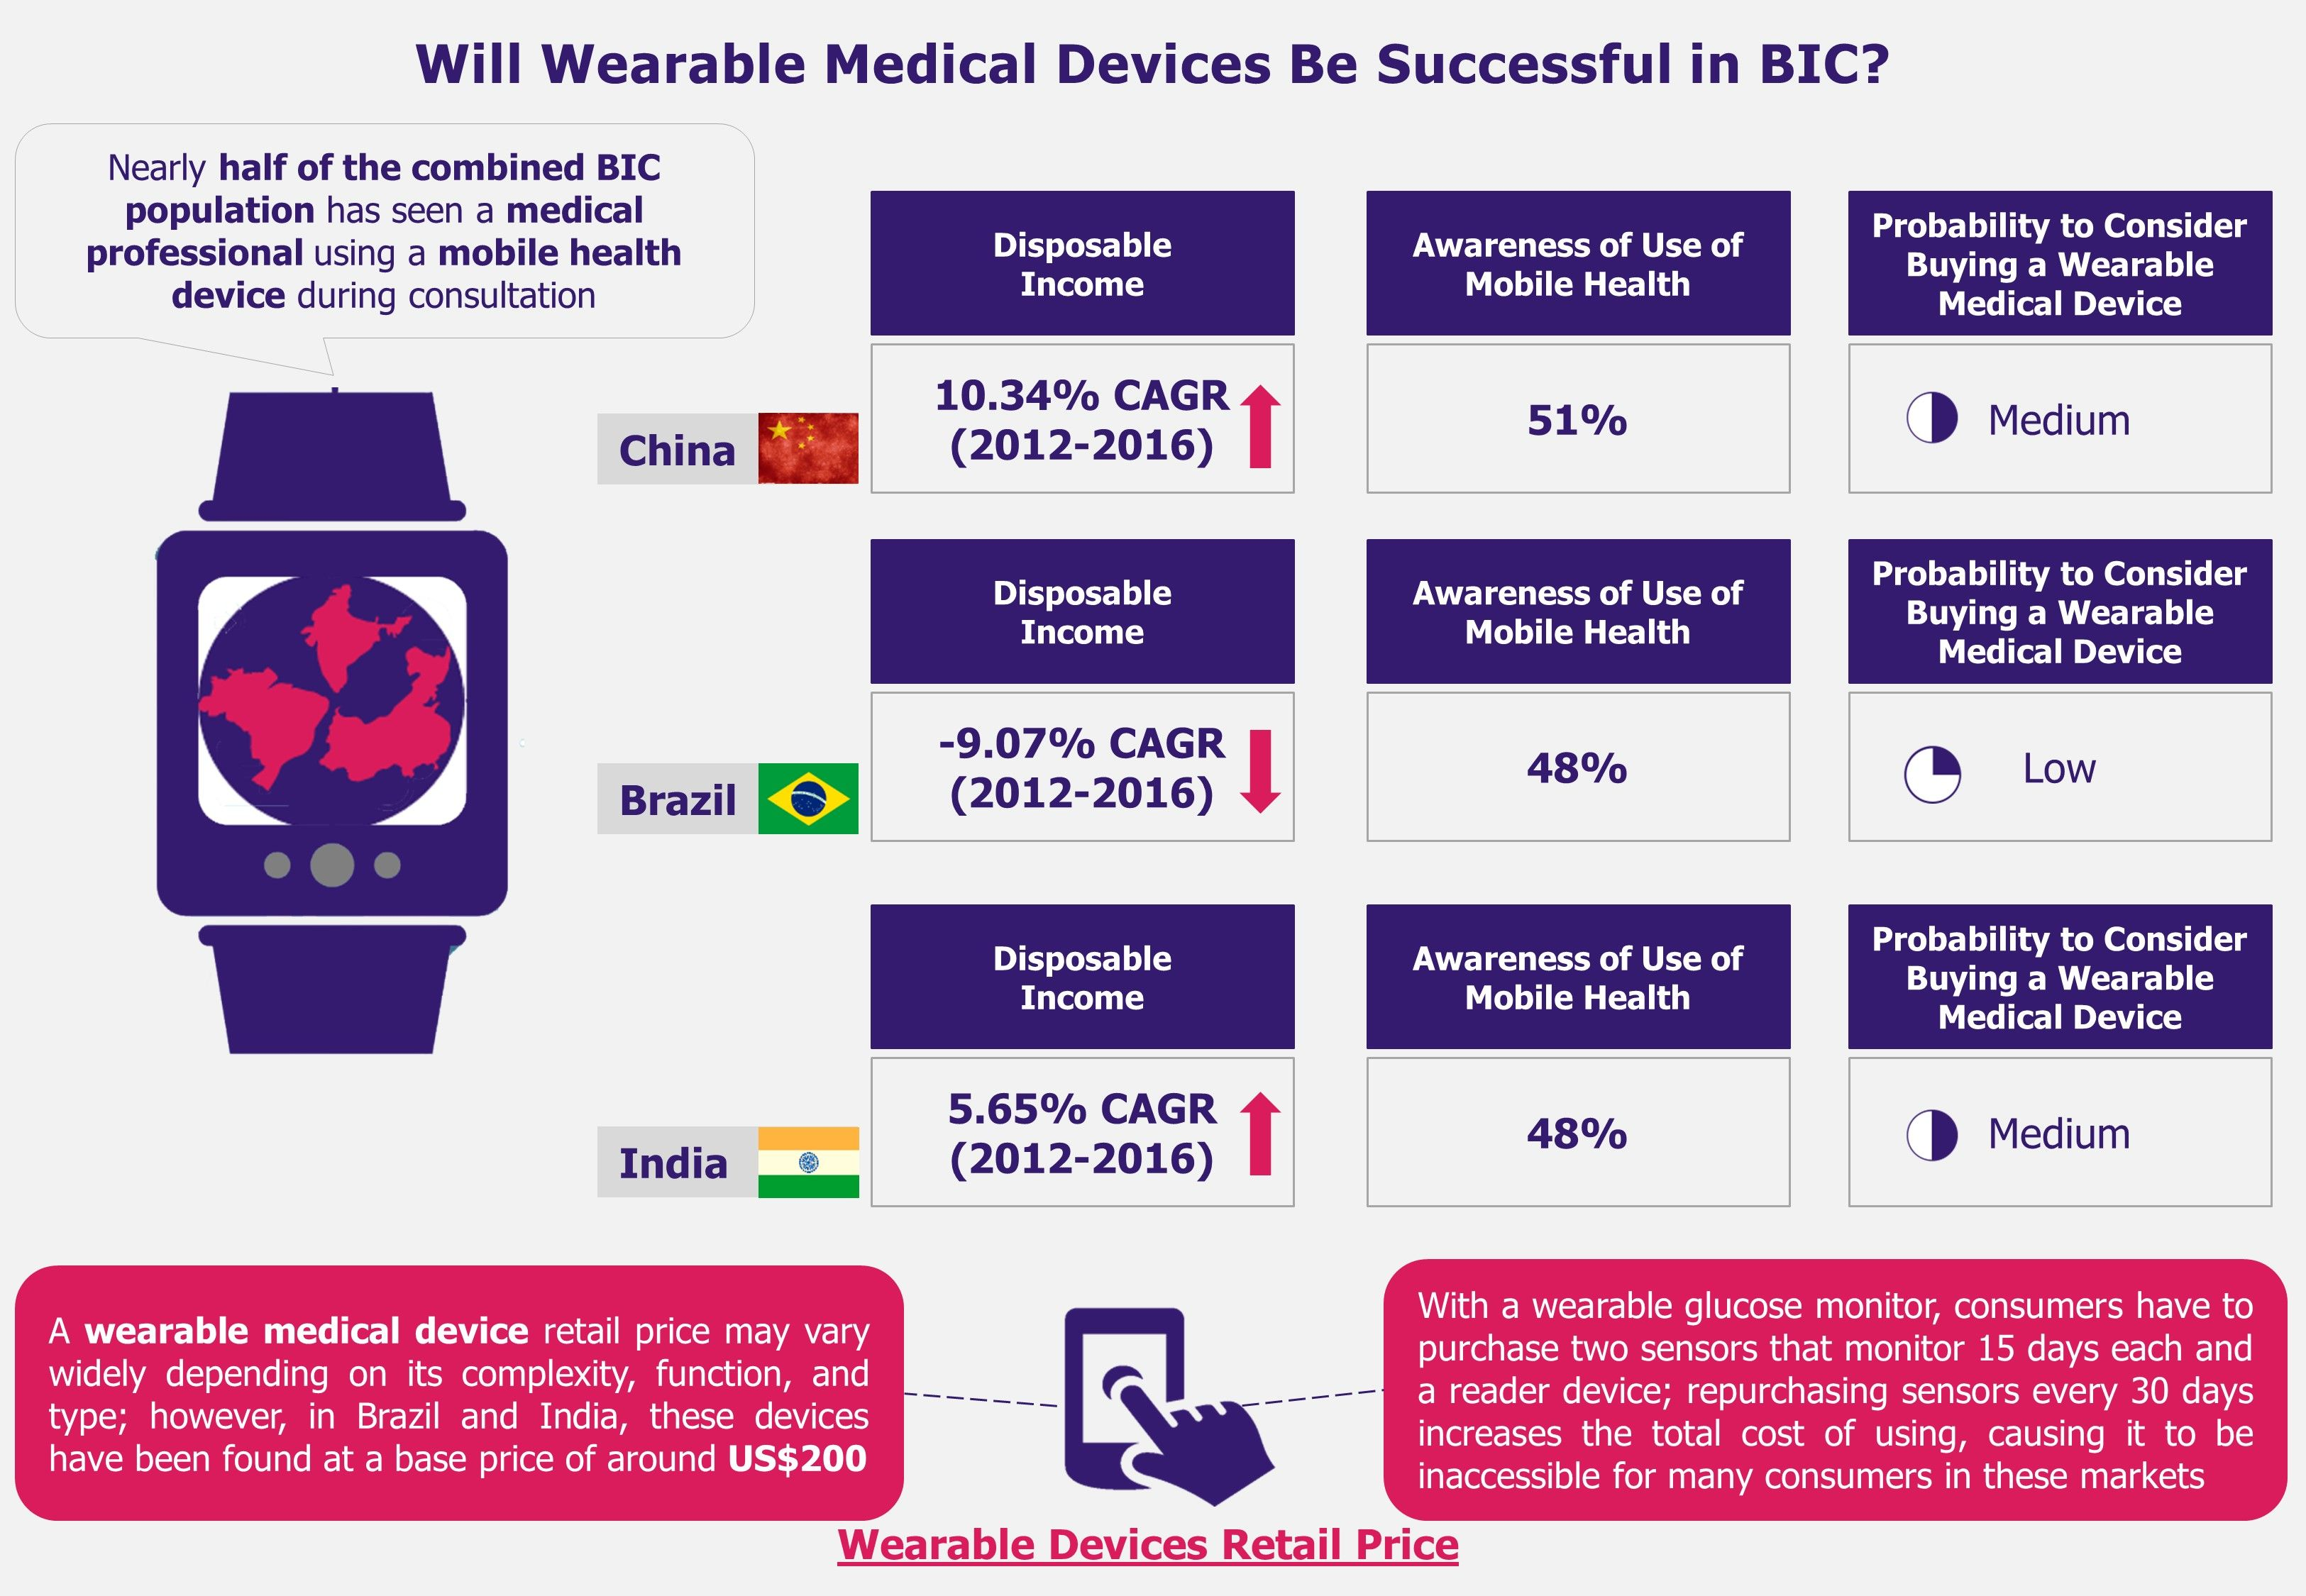 3Successful in BIC Wearable medical devices, Medical